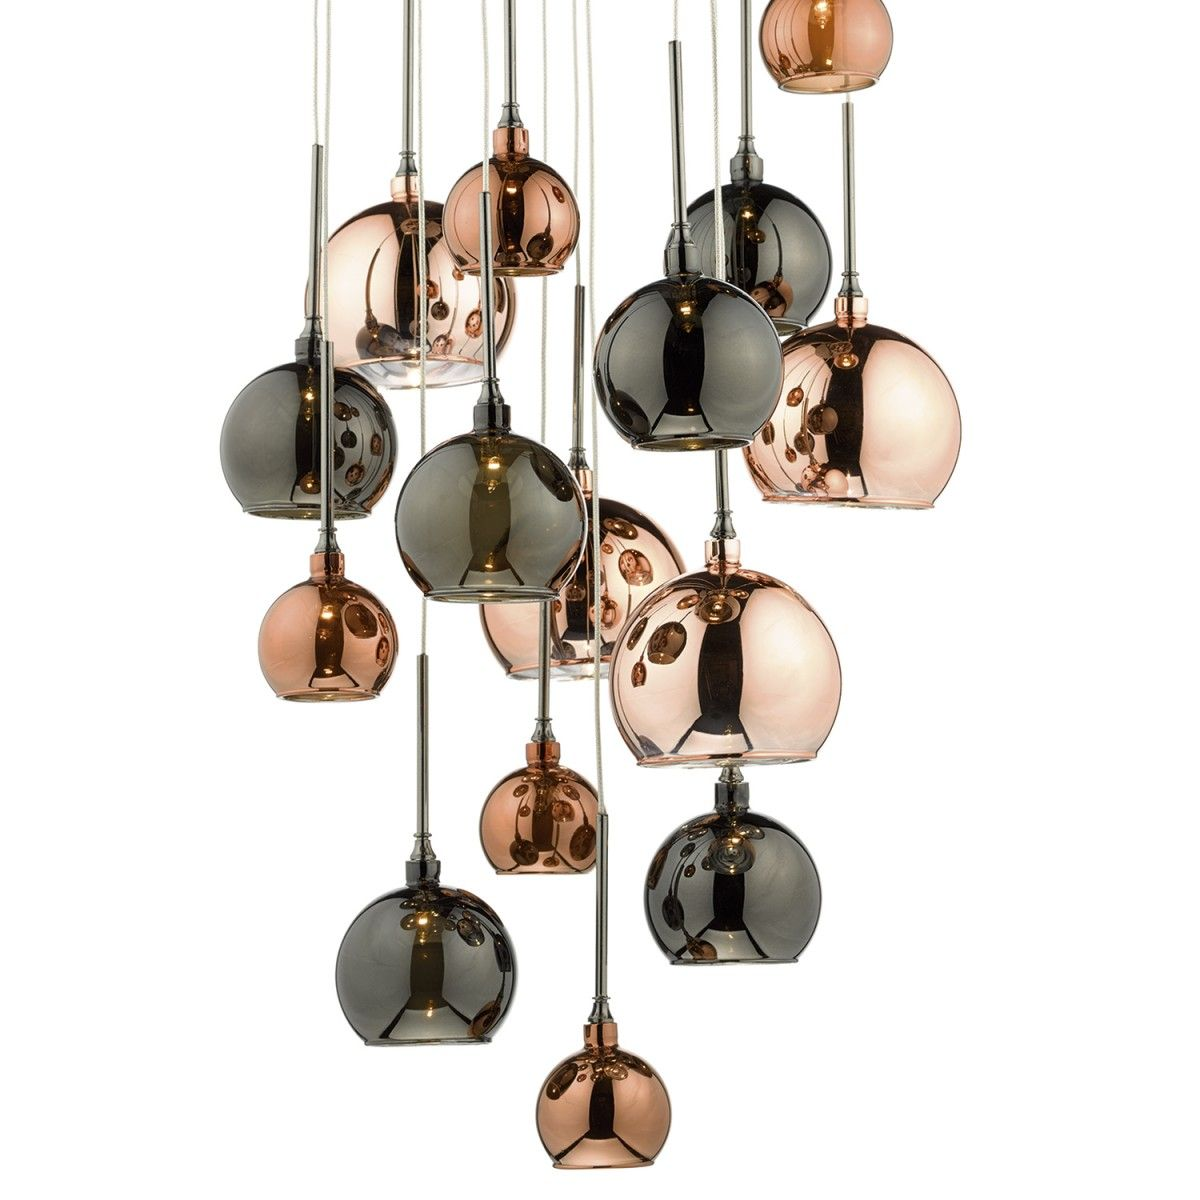 Aurelia 15 light g4 spiral pendant with copper dark copper bronze aurelia 15 light g4 spiral pendant with copper dark copper bronze glass black chrome ceiling plate mozeypictures Image collections